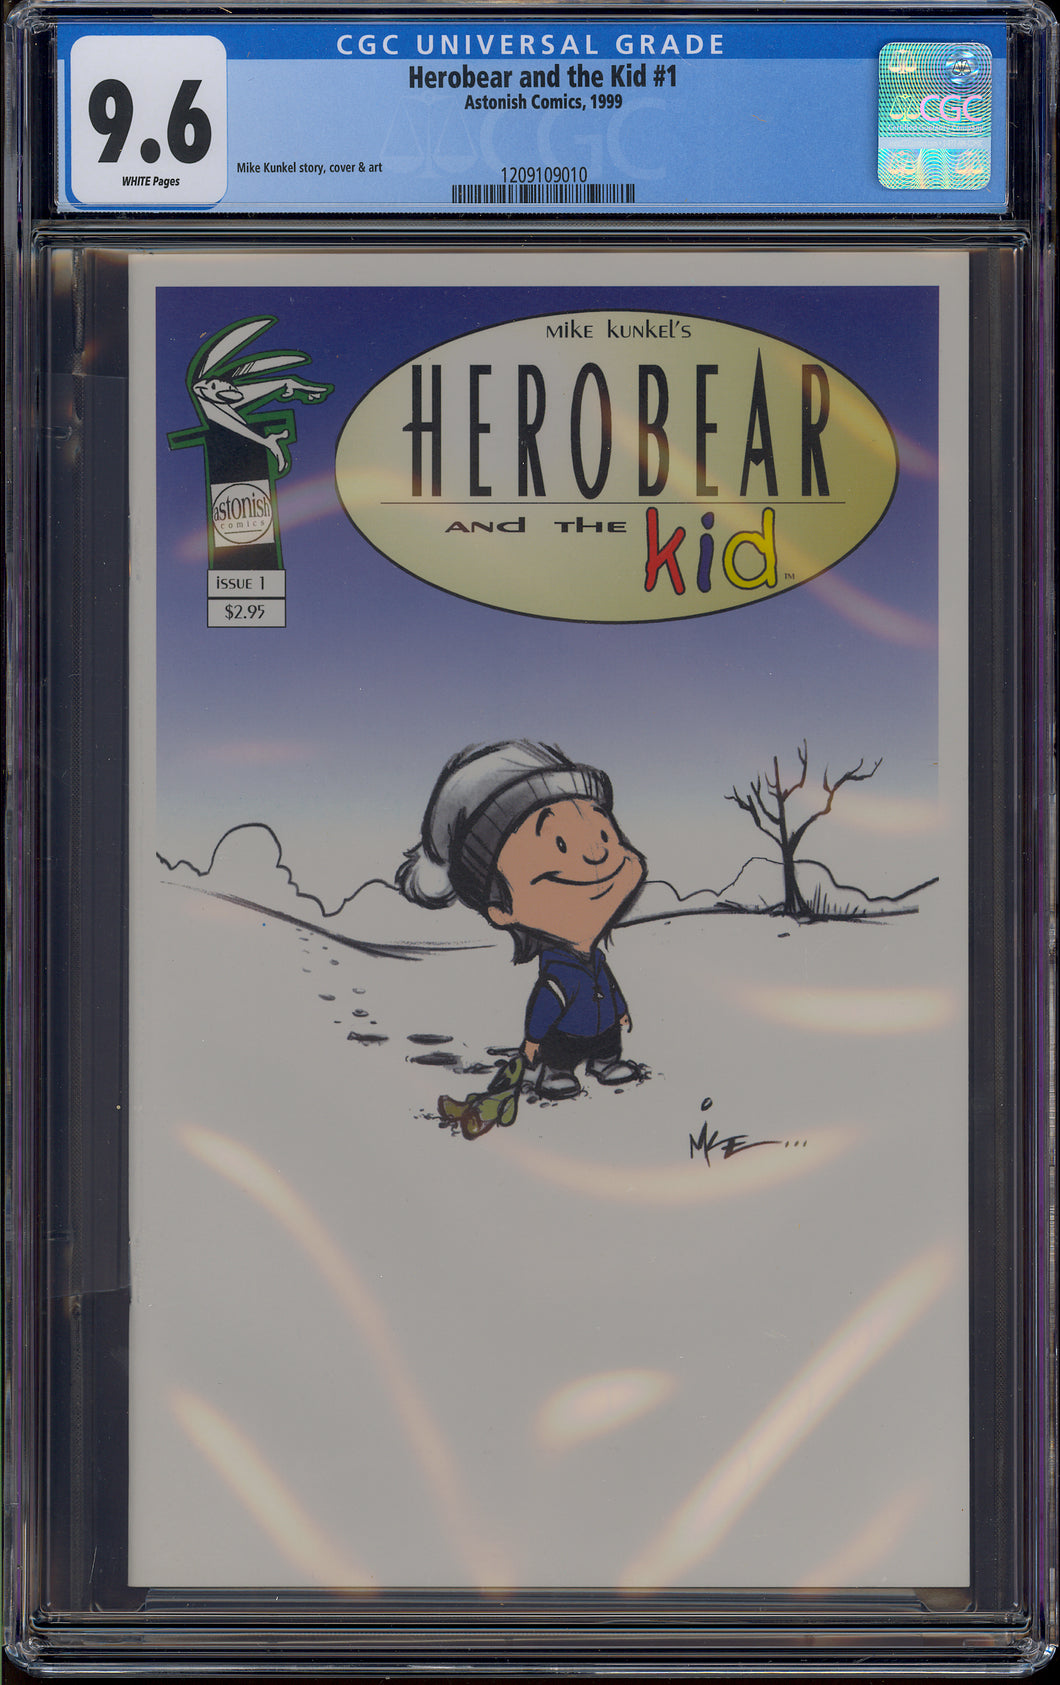 HEROBEAR AND THE KID #1 (1999 Astonish Comics) CGC GRADED 9.6 NM+ WHITE PAGES